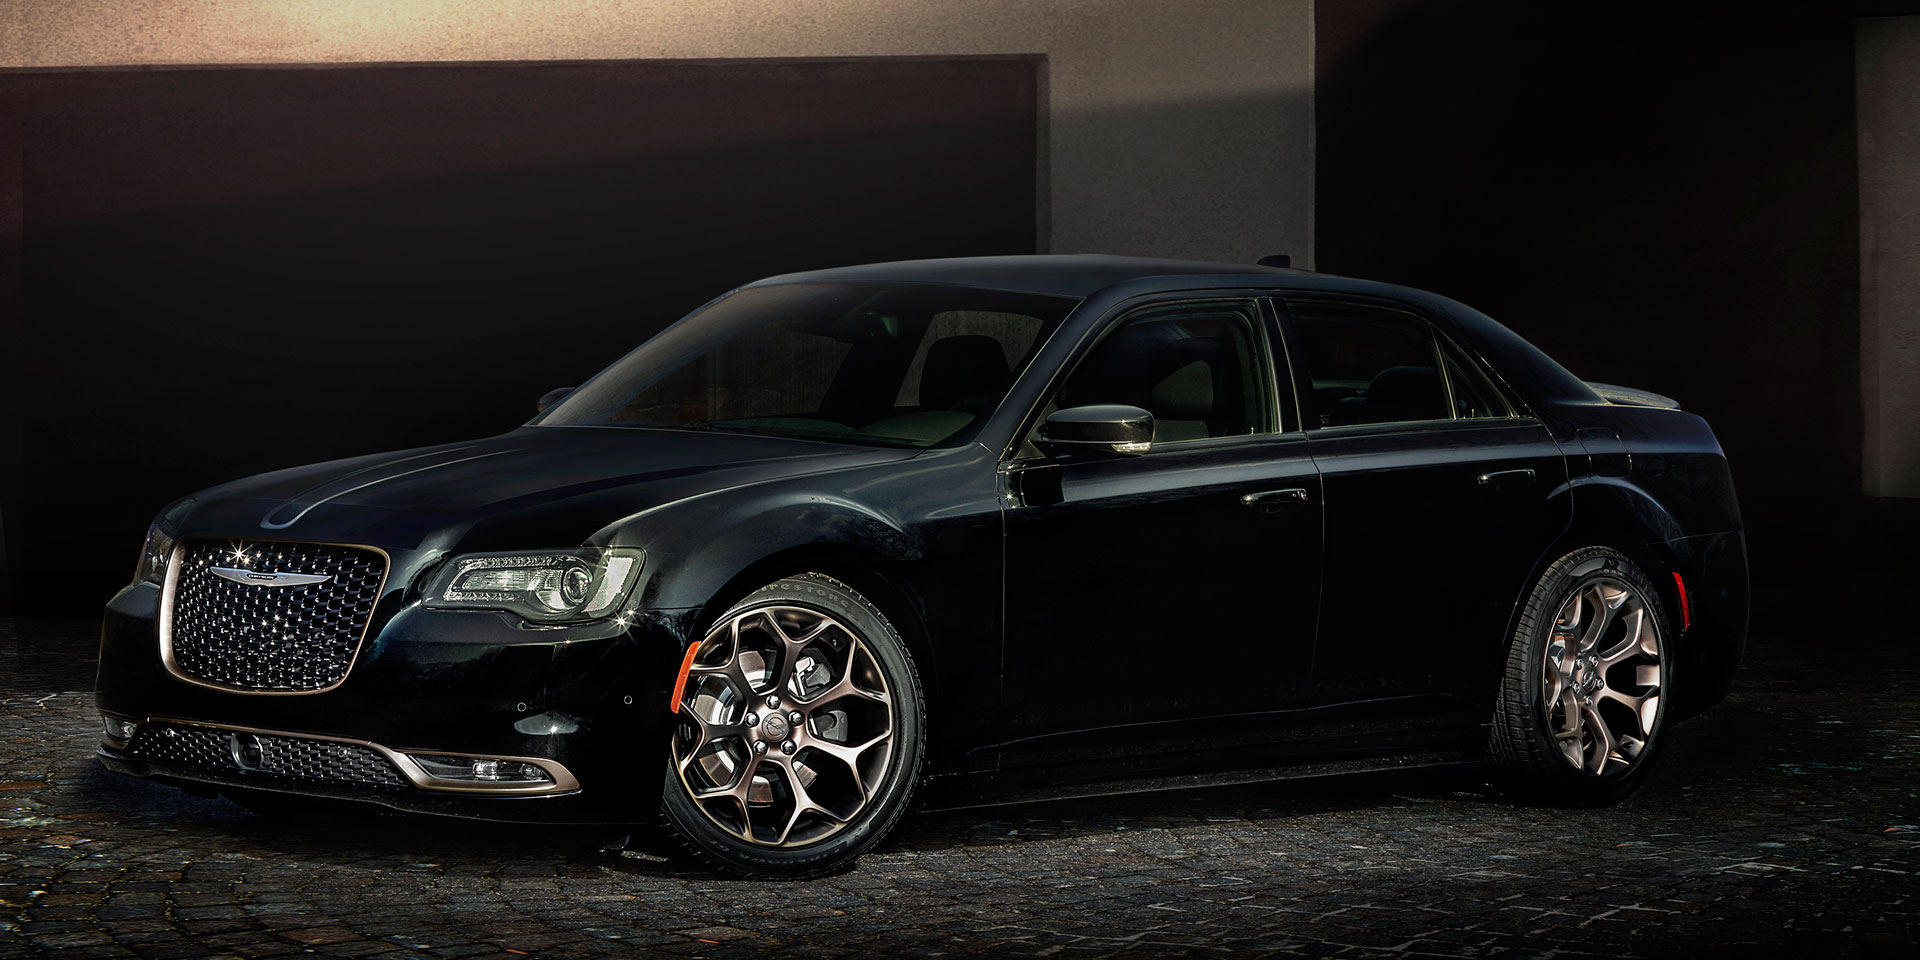 2016 - Chrysler - 300S Alloy Edition - Vehicles on Display ...